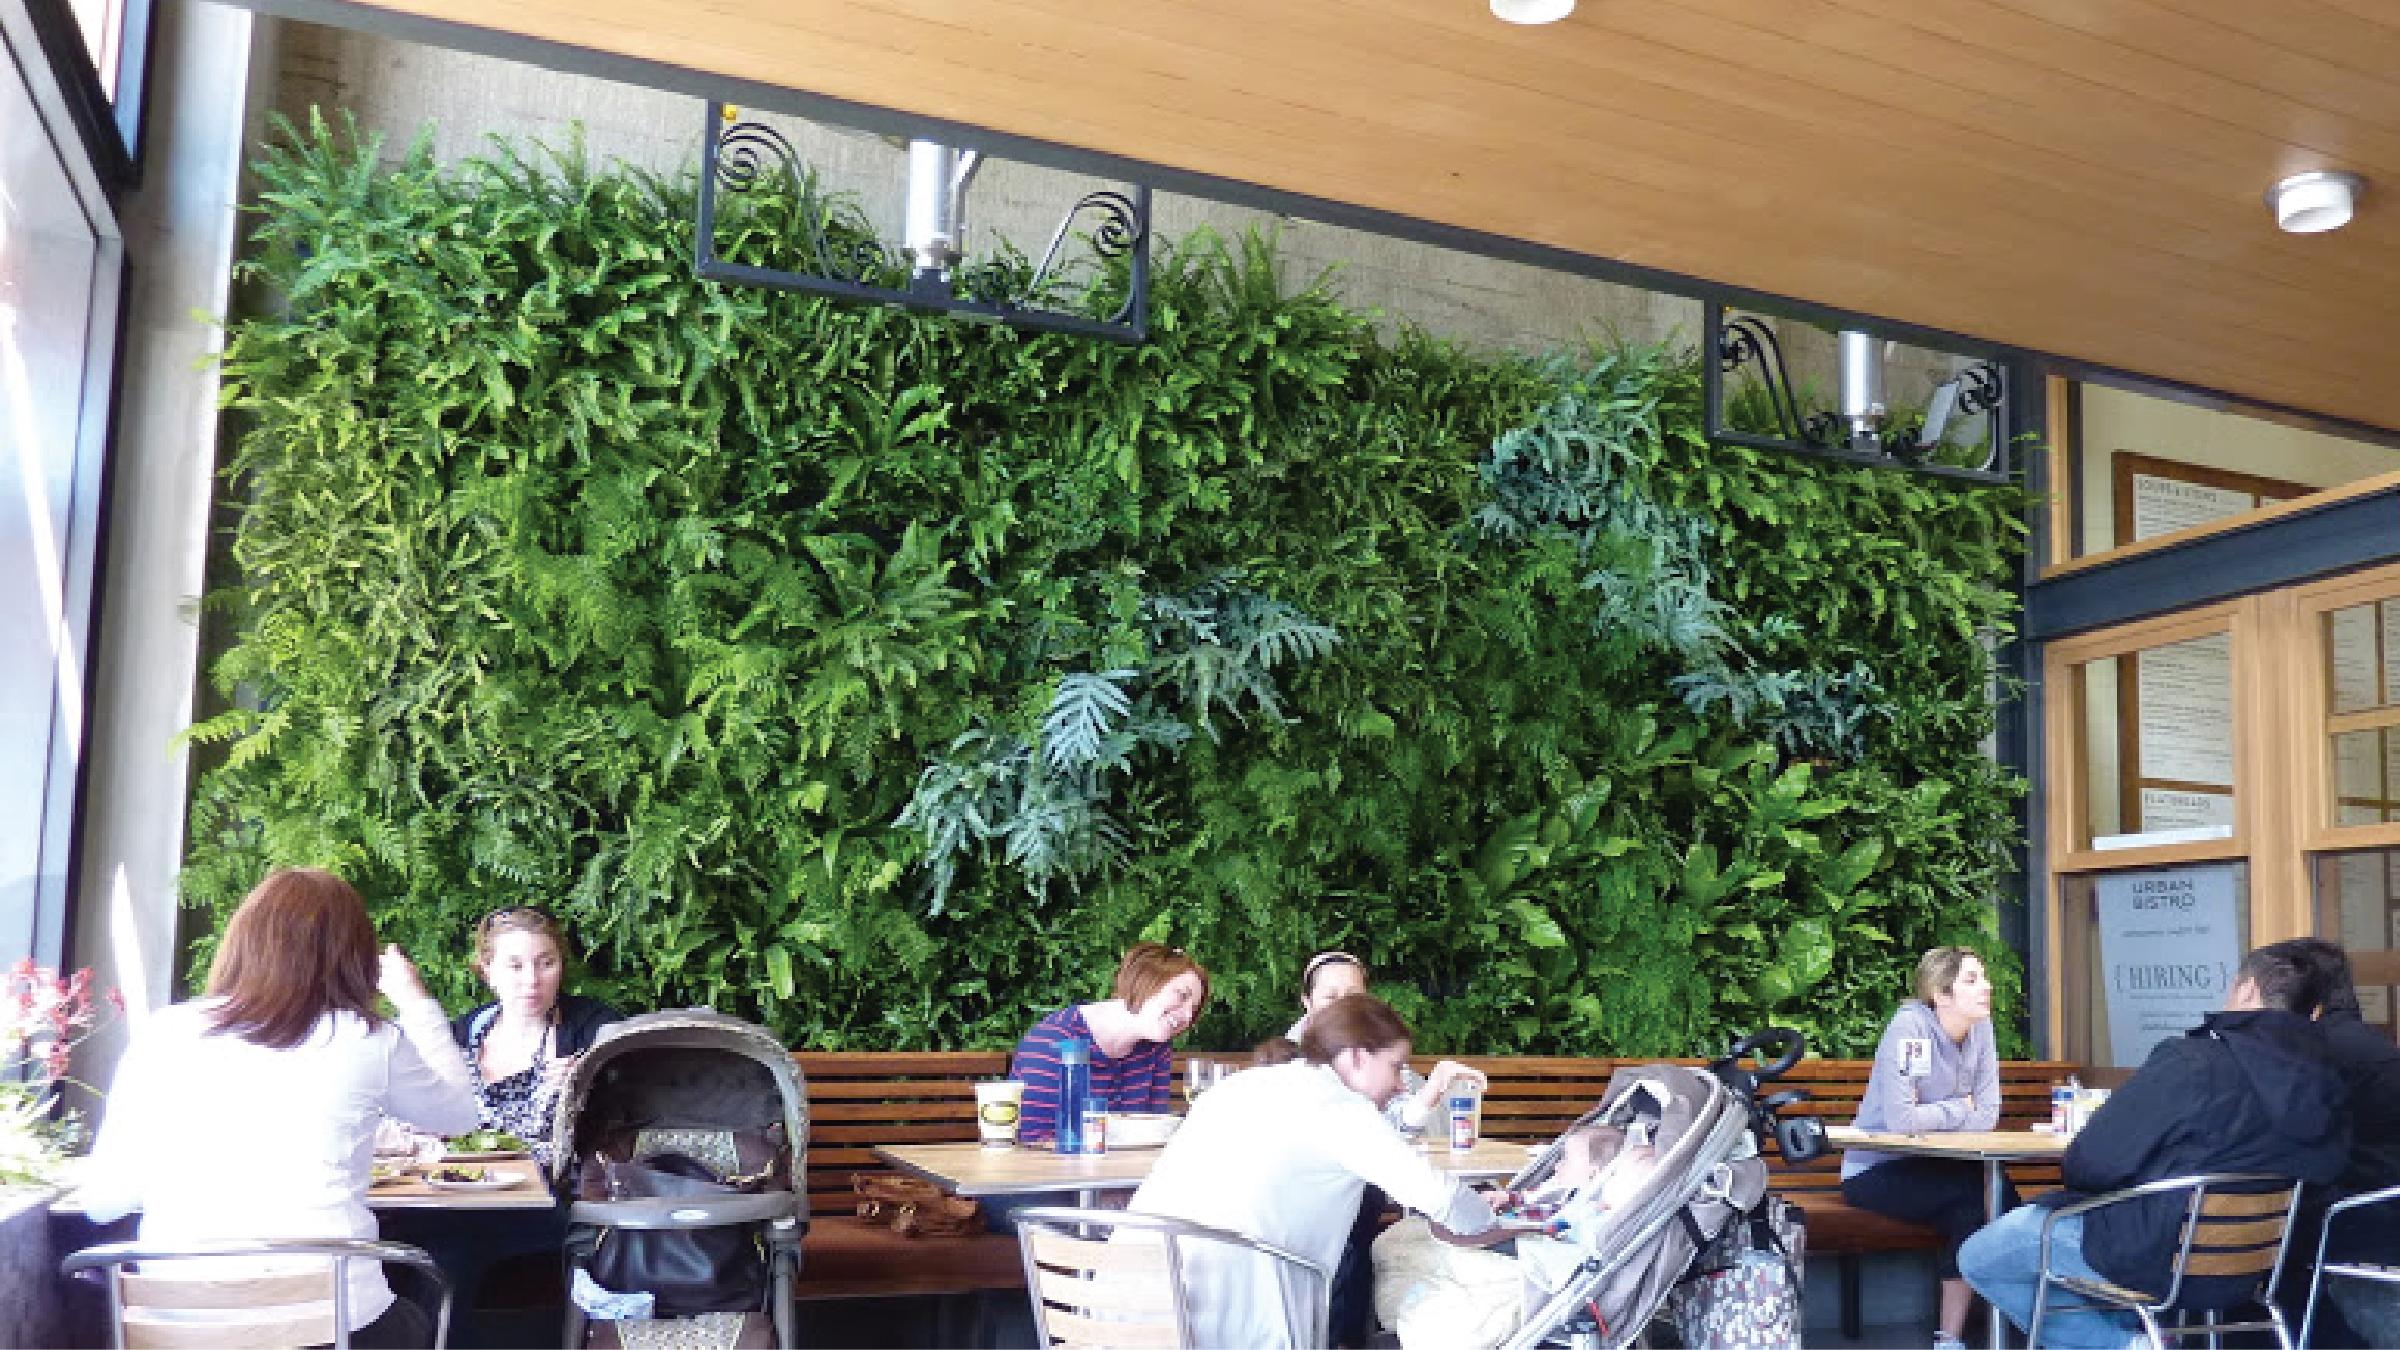 Chris Bribach | Plants On Walls | Urban Bistro